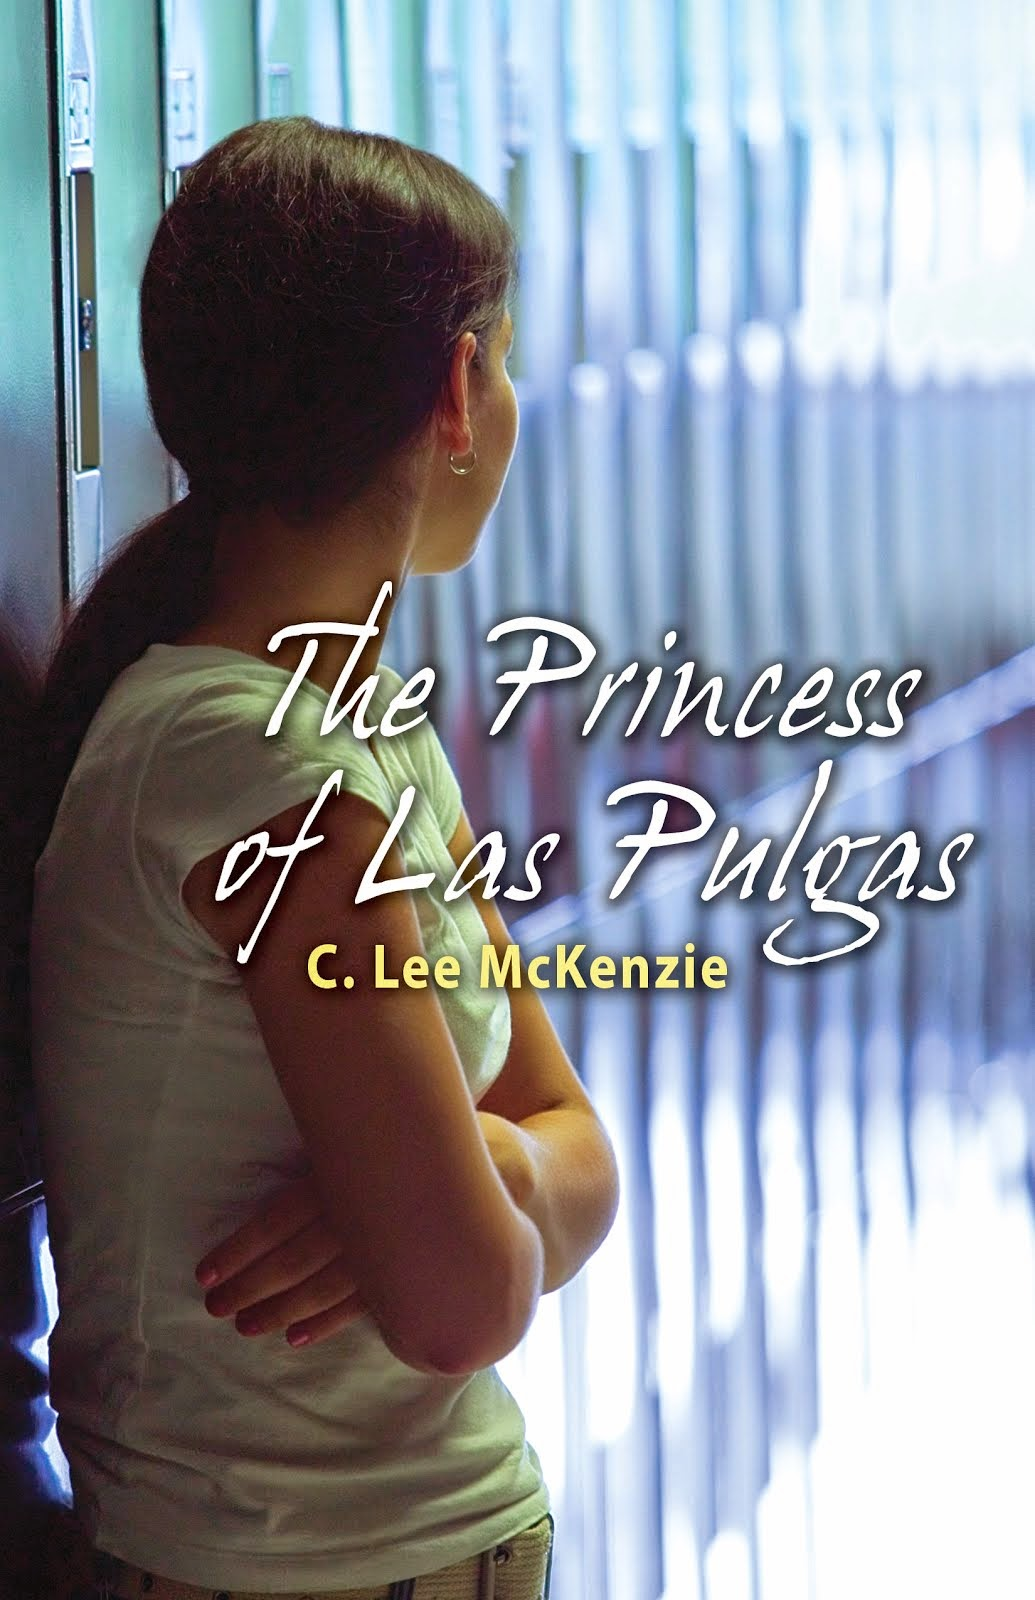 Add Princess of Las Pulgas to your Goodreads TBR